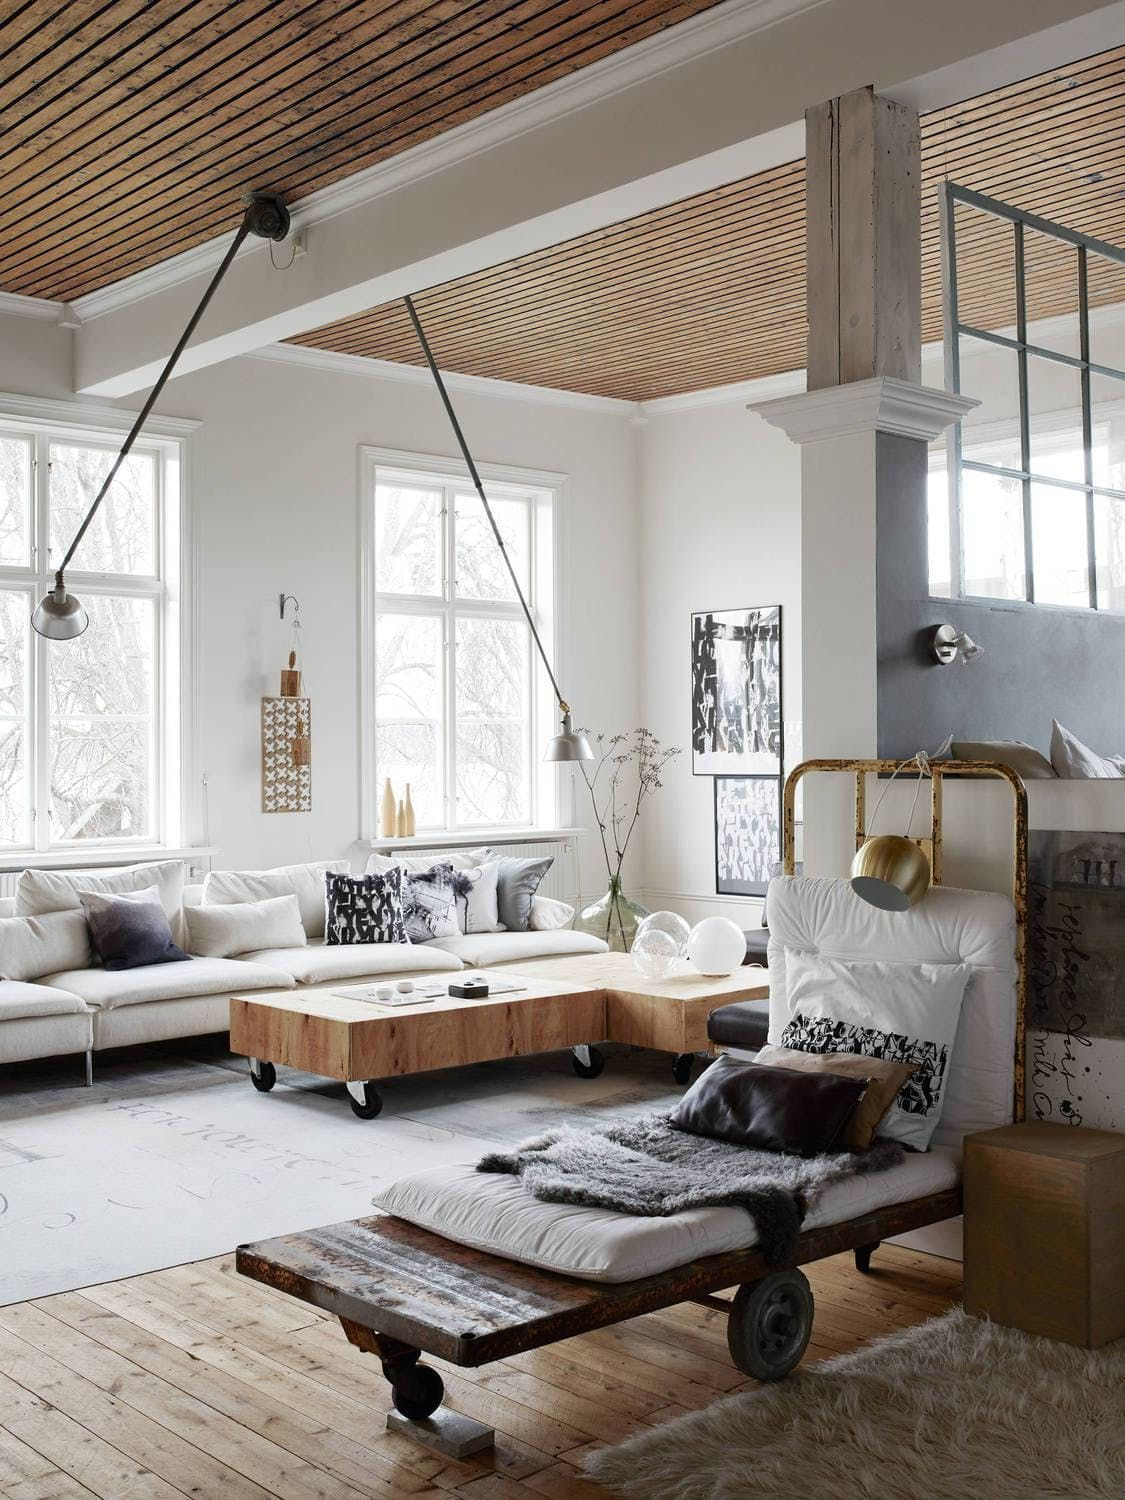 discover your home's decor personality: warm industrial